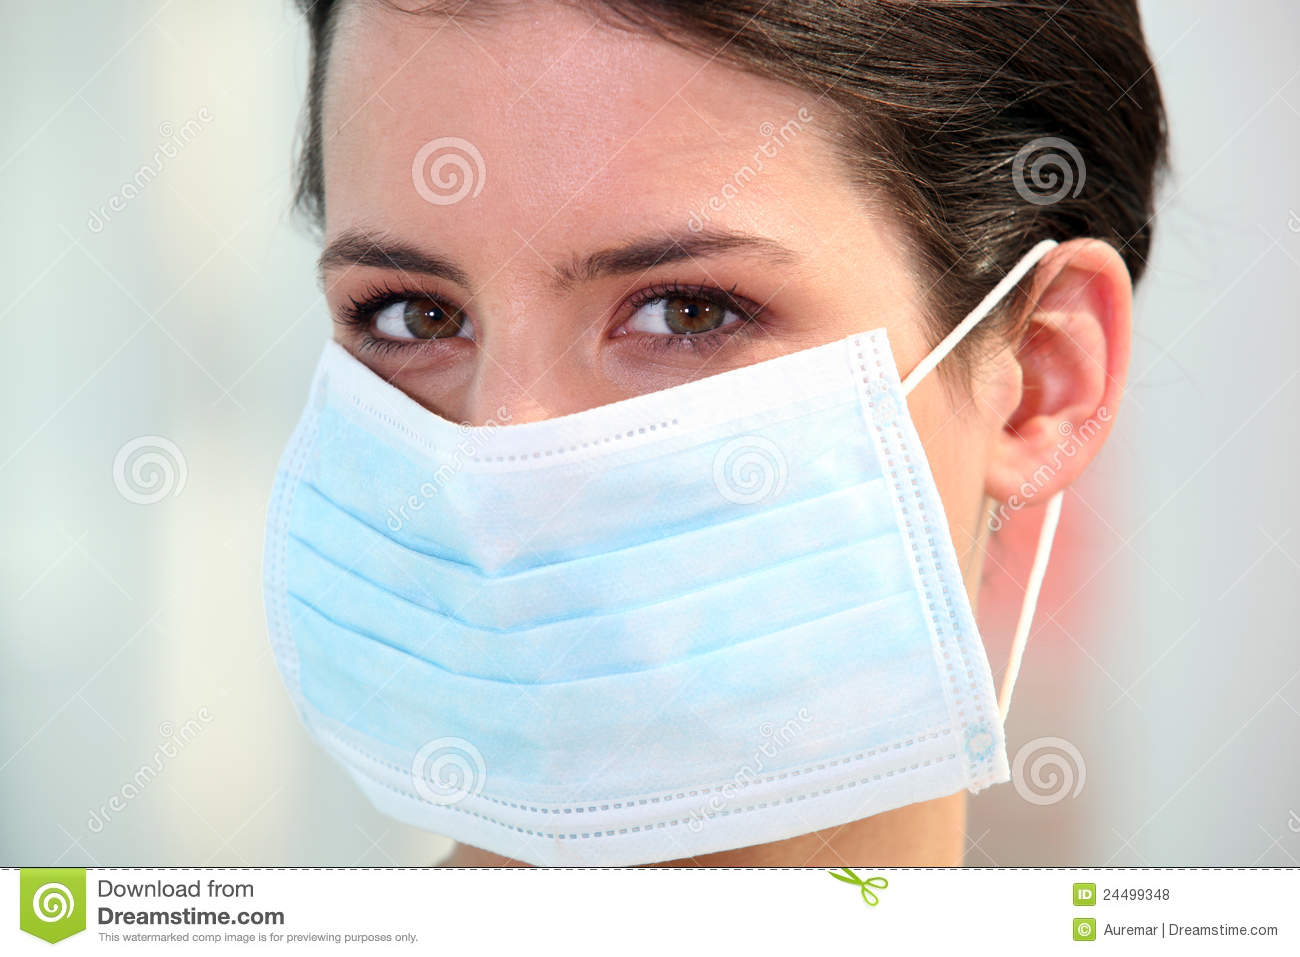 Mask Occupation Of - Stock Surgical Photo Nurse Wearing Image